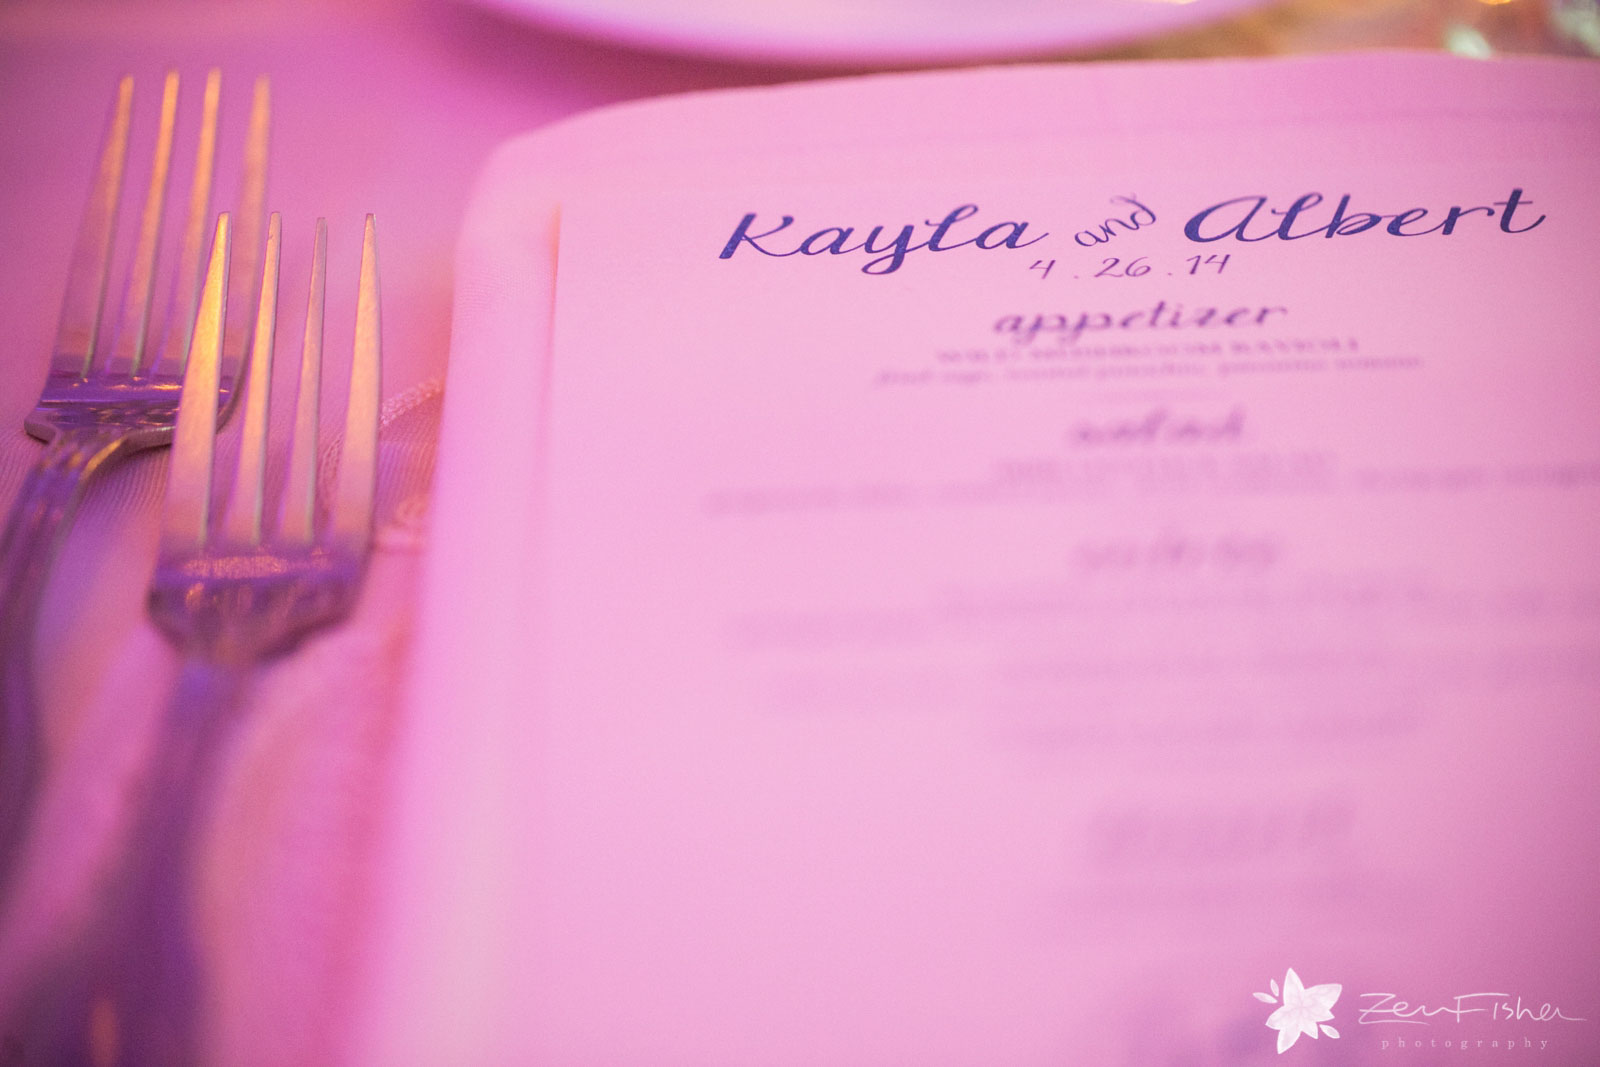 Close up of personalized menu at place setting, Kayla and Albert, April 26, 2014